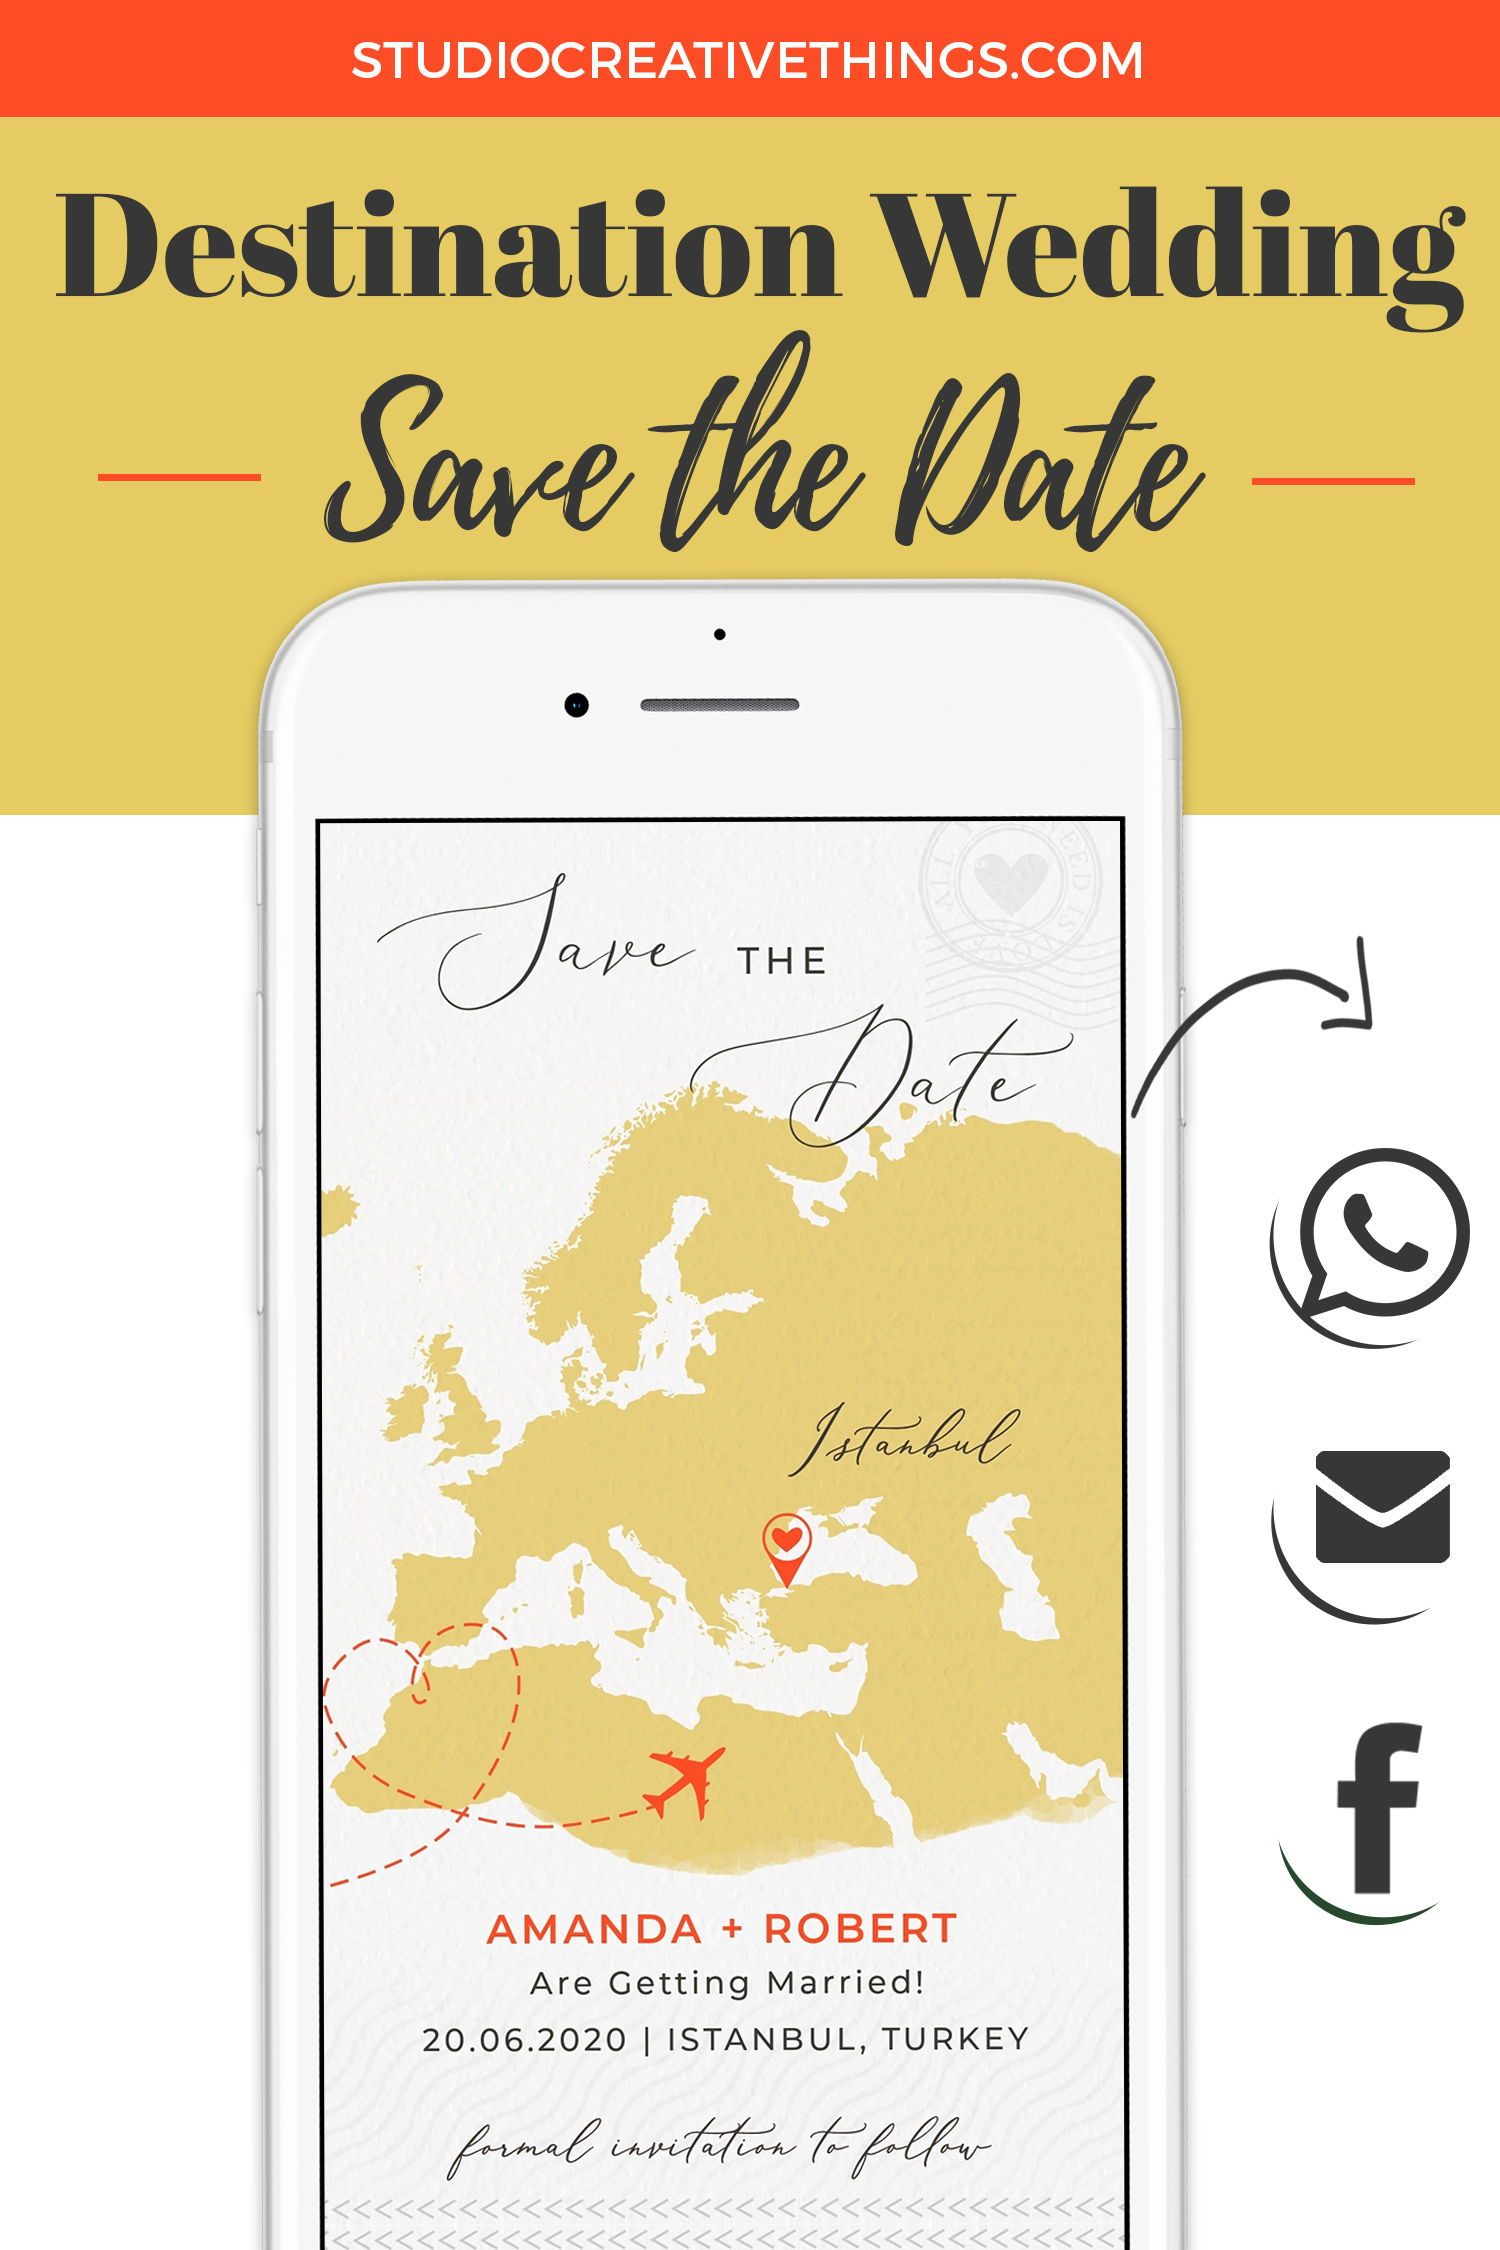 Destination wedding save the date electronic invitations